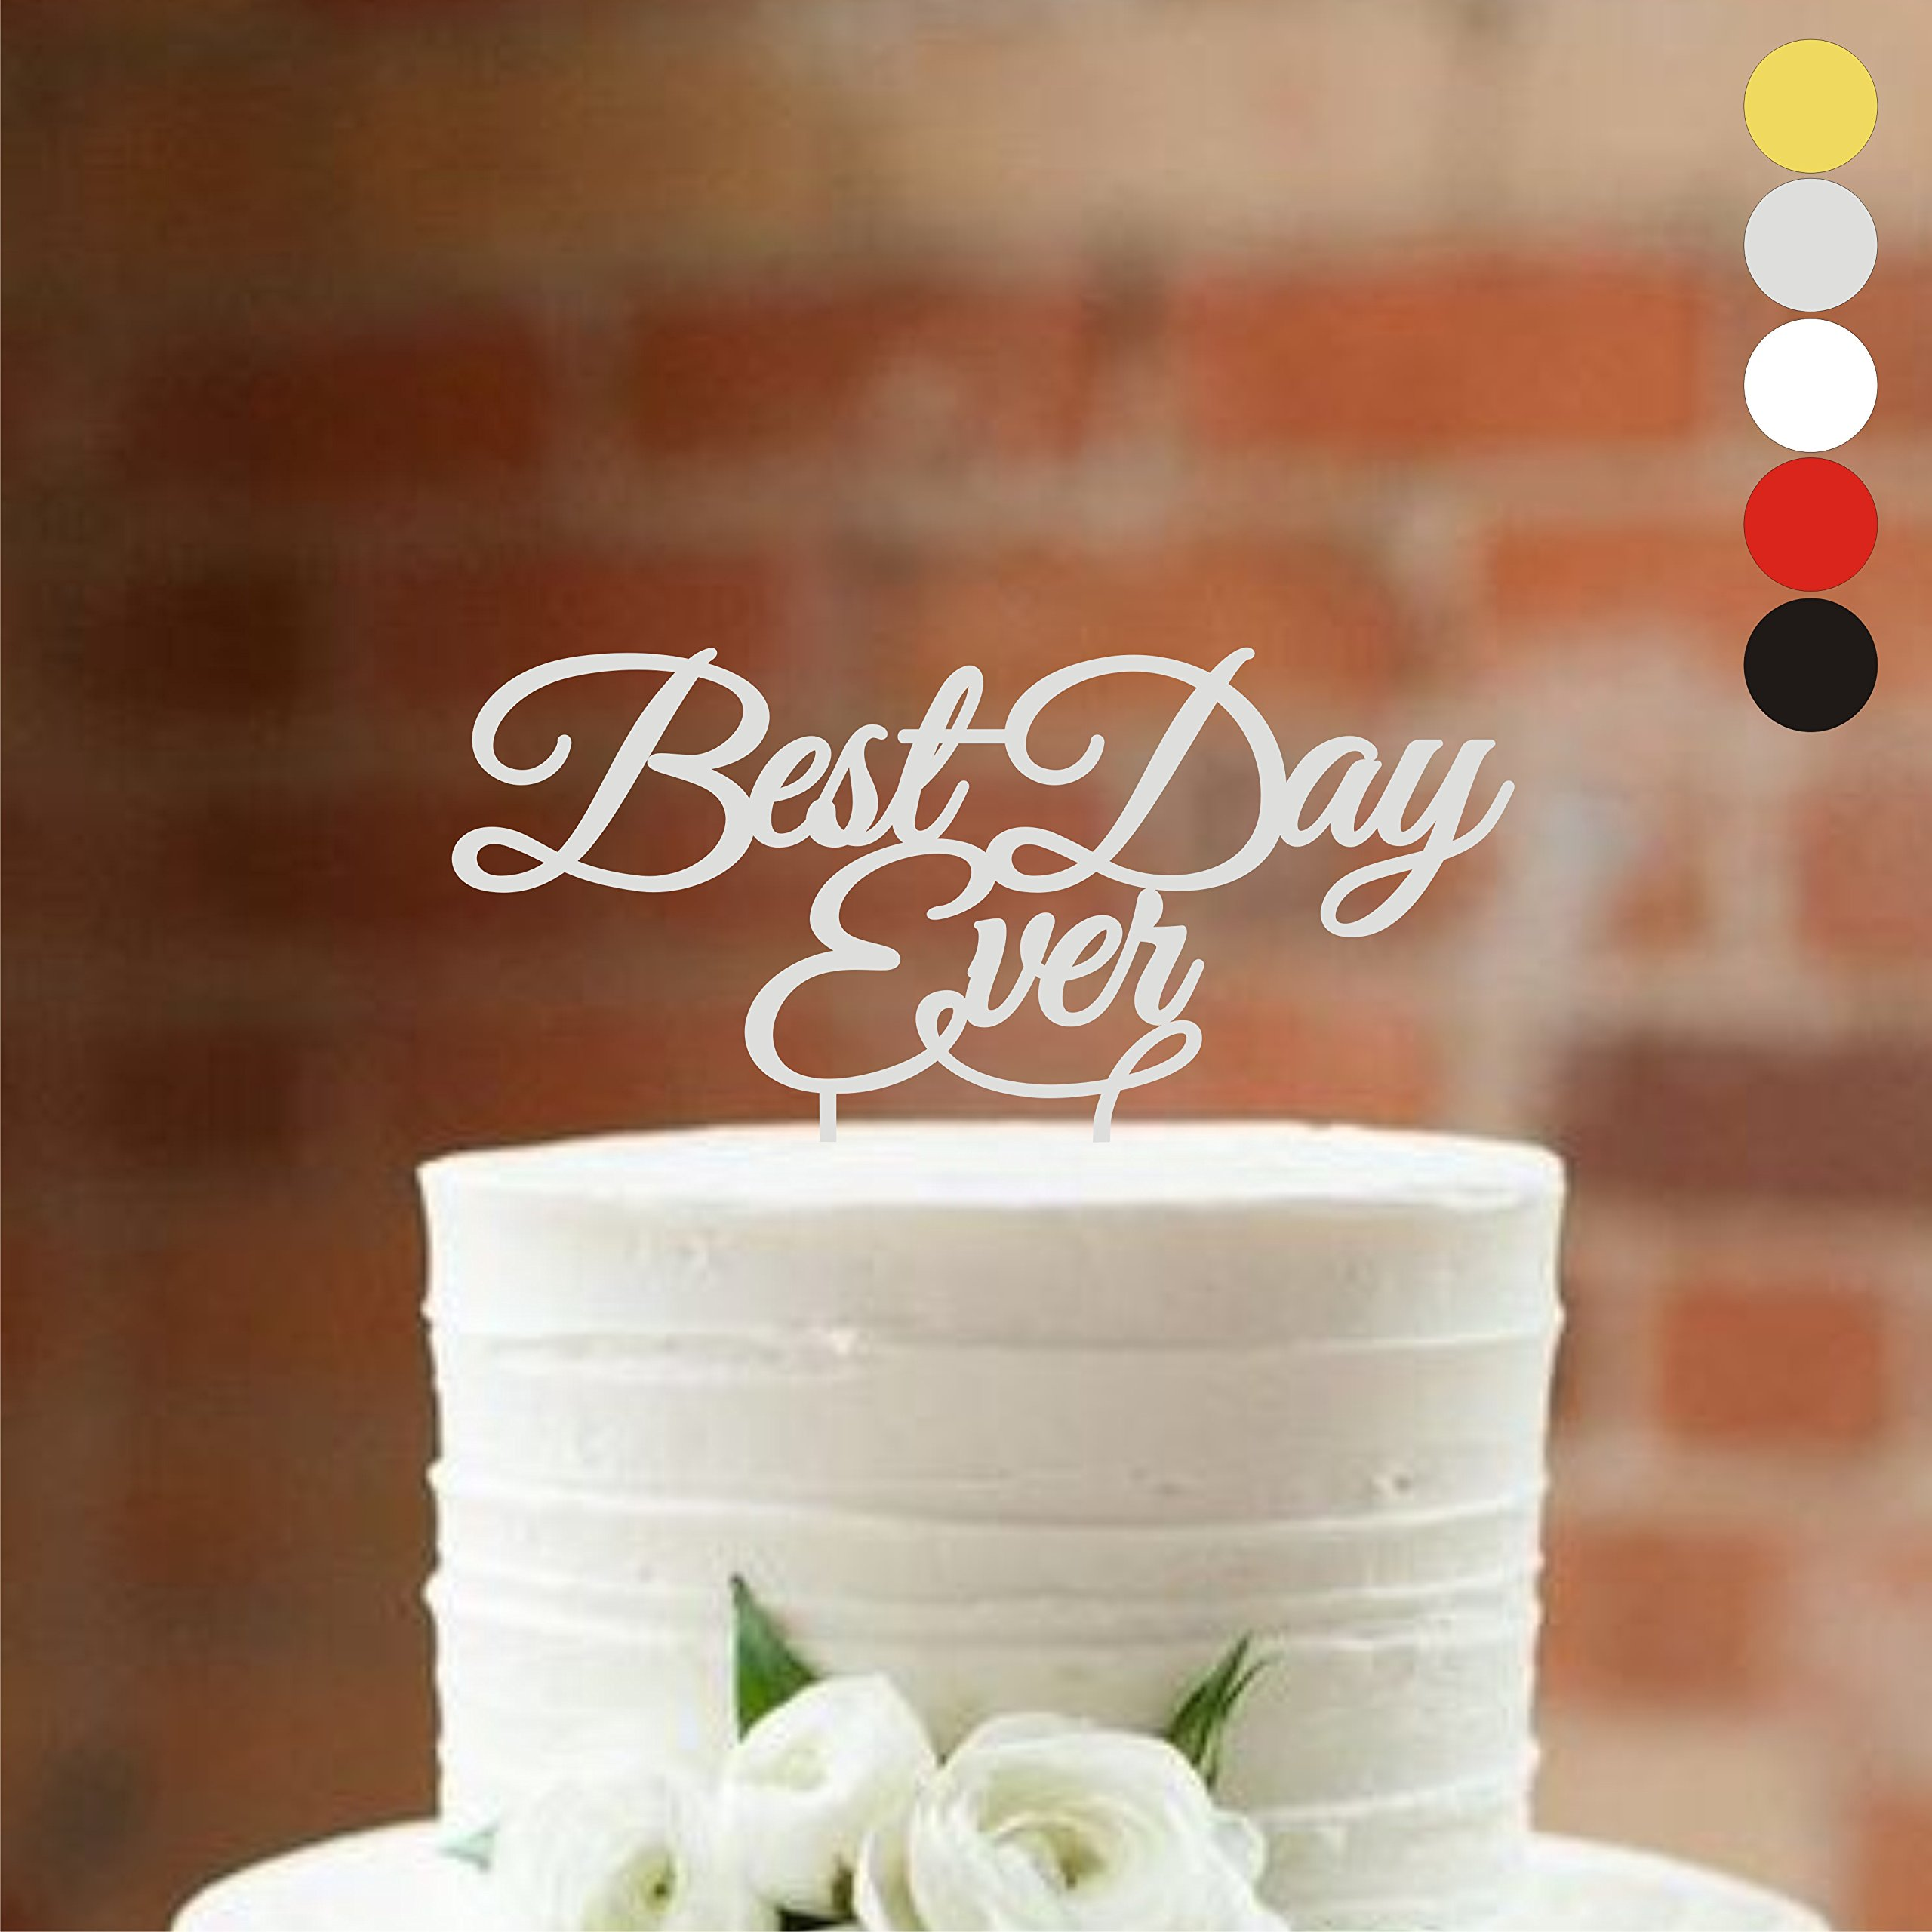 Wedding Cake topper Best day ever Cake Toppers for Wedding Acrylic Cake Decorations HappyPlywood (width 7'', silver) by HappyPlywood